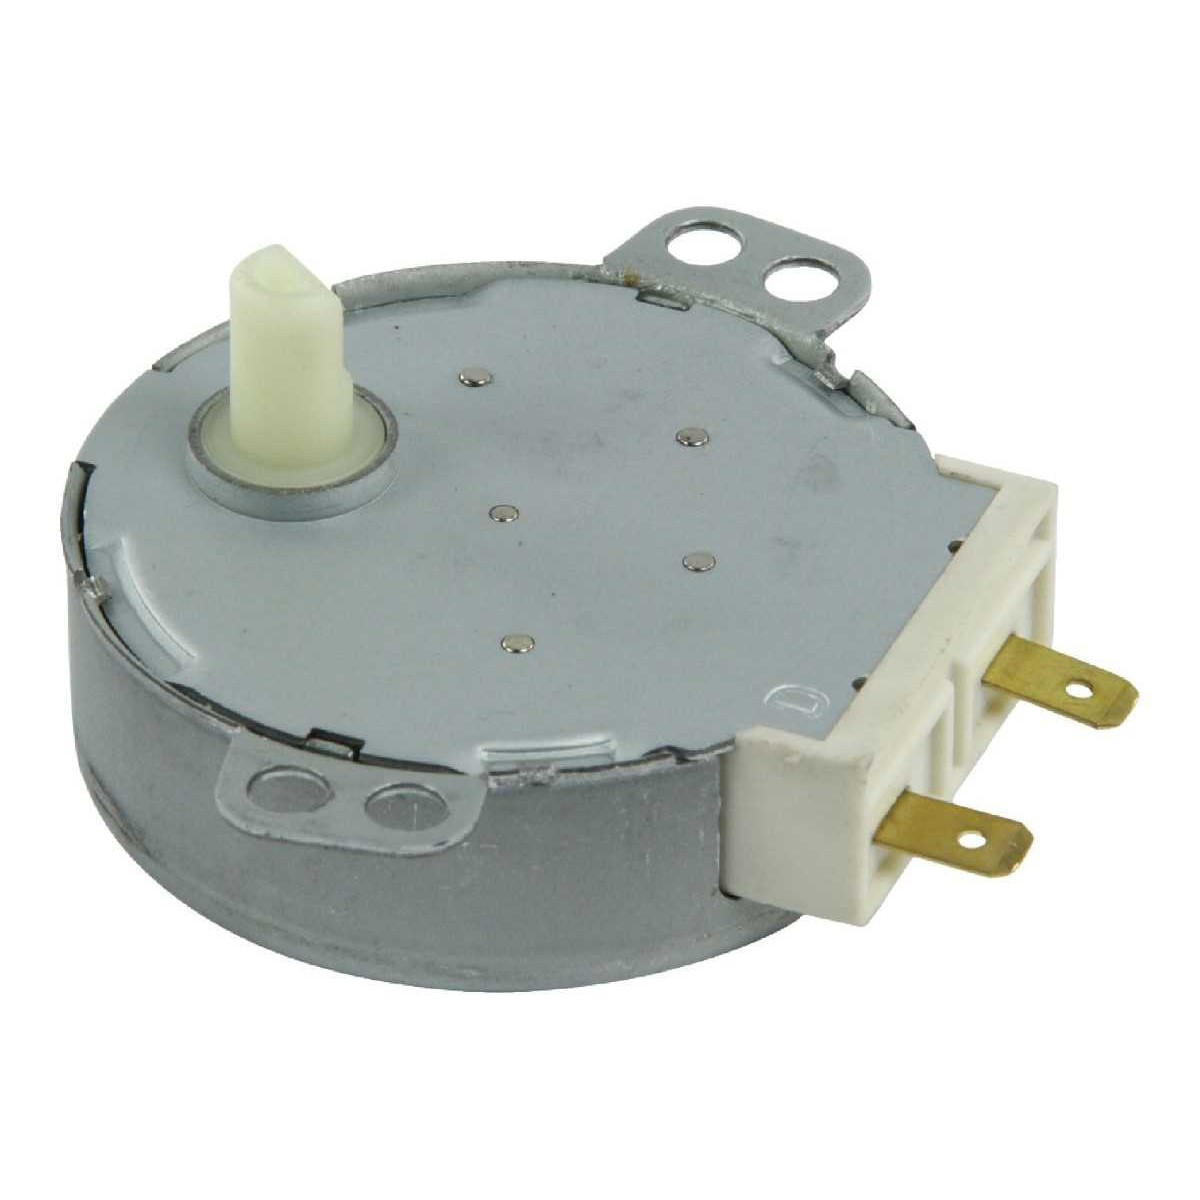 Draaiplateau Motor met 5mm D-as